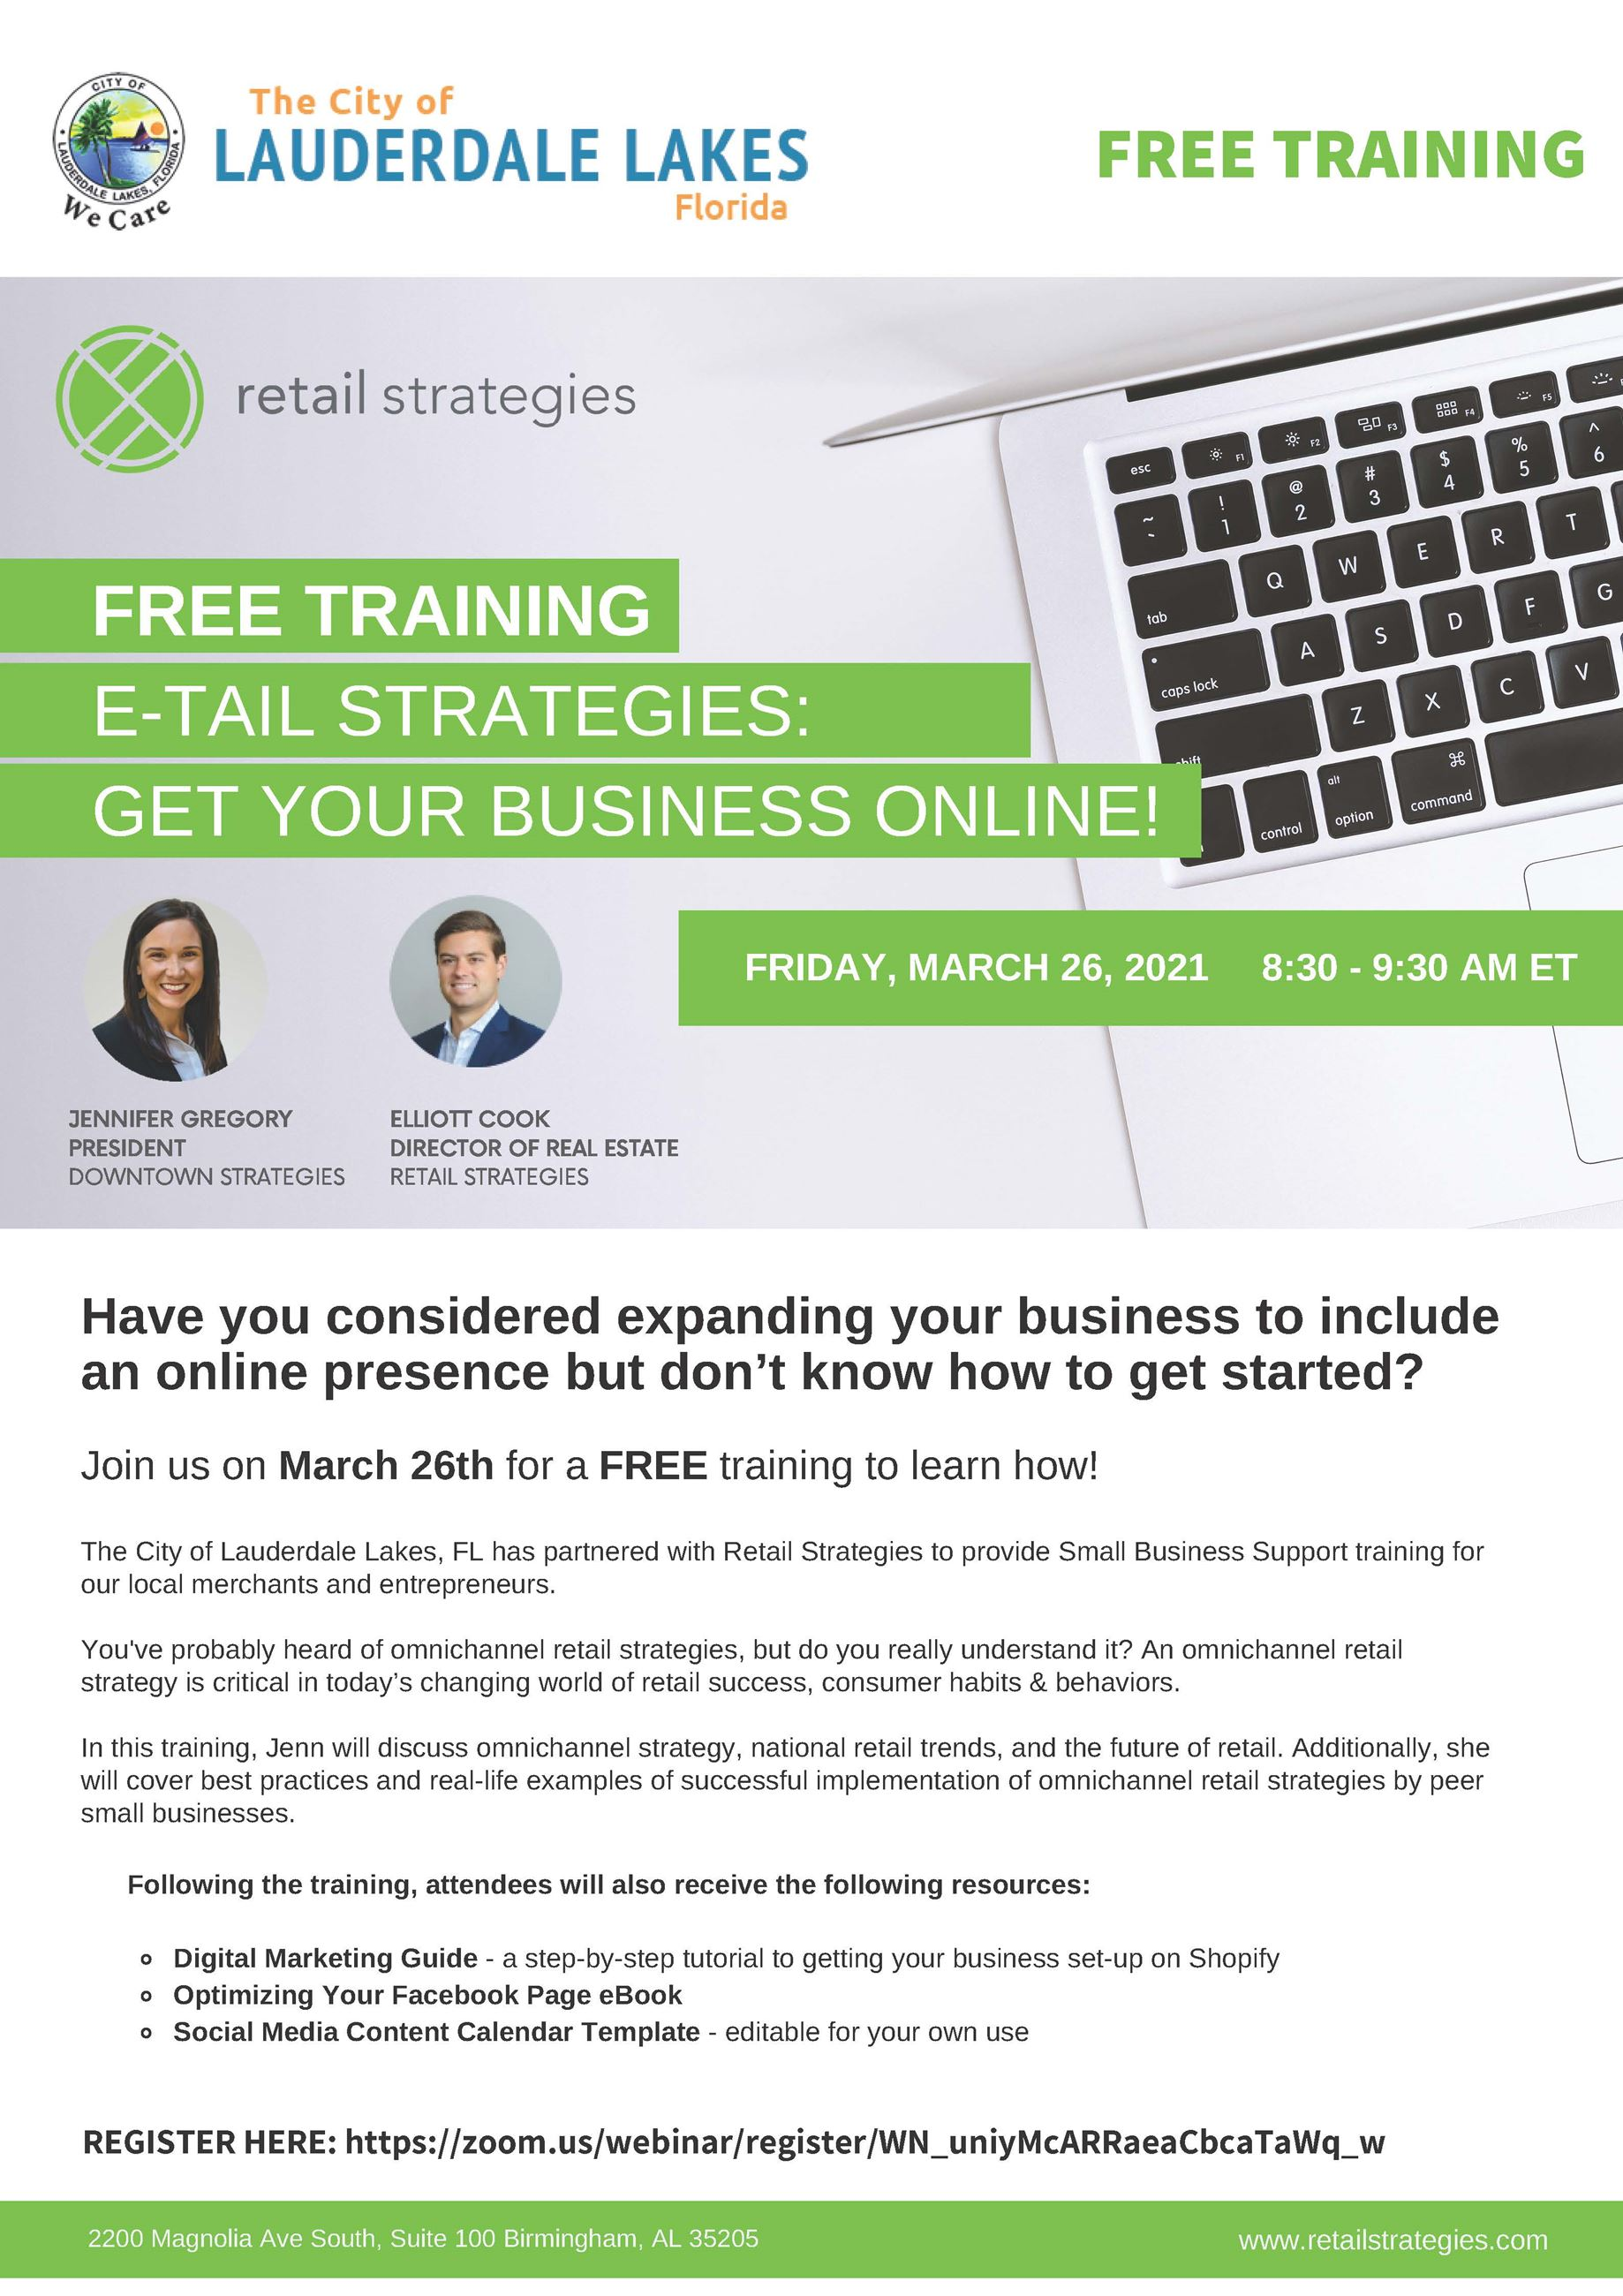 LLakes FL - Get Your Business Online  (March 26th)